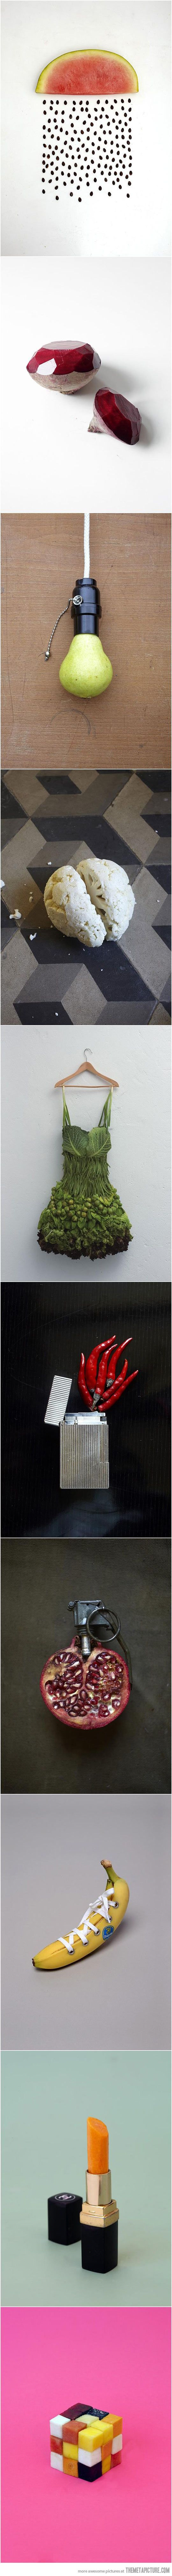 Creative food art…: